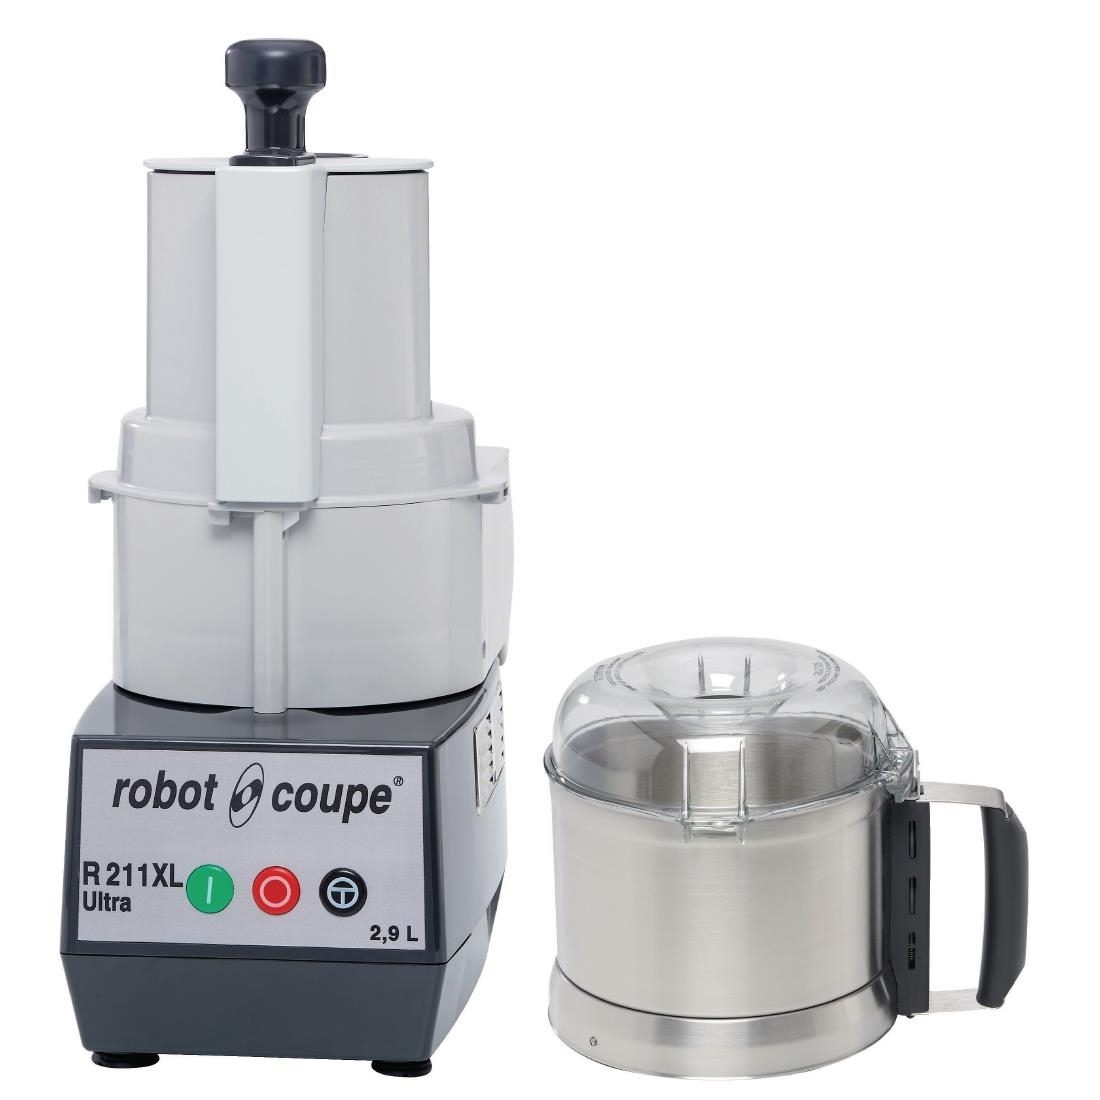 Robot Coupe Food Processor with Veg Prep Attachment R211XL Ultra